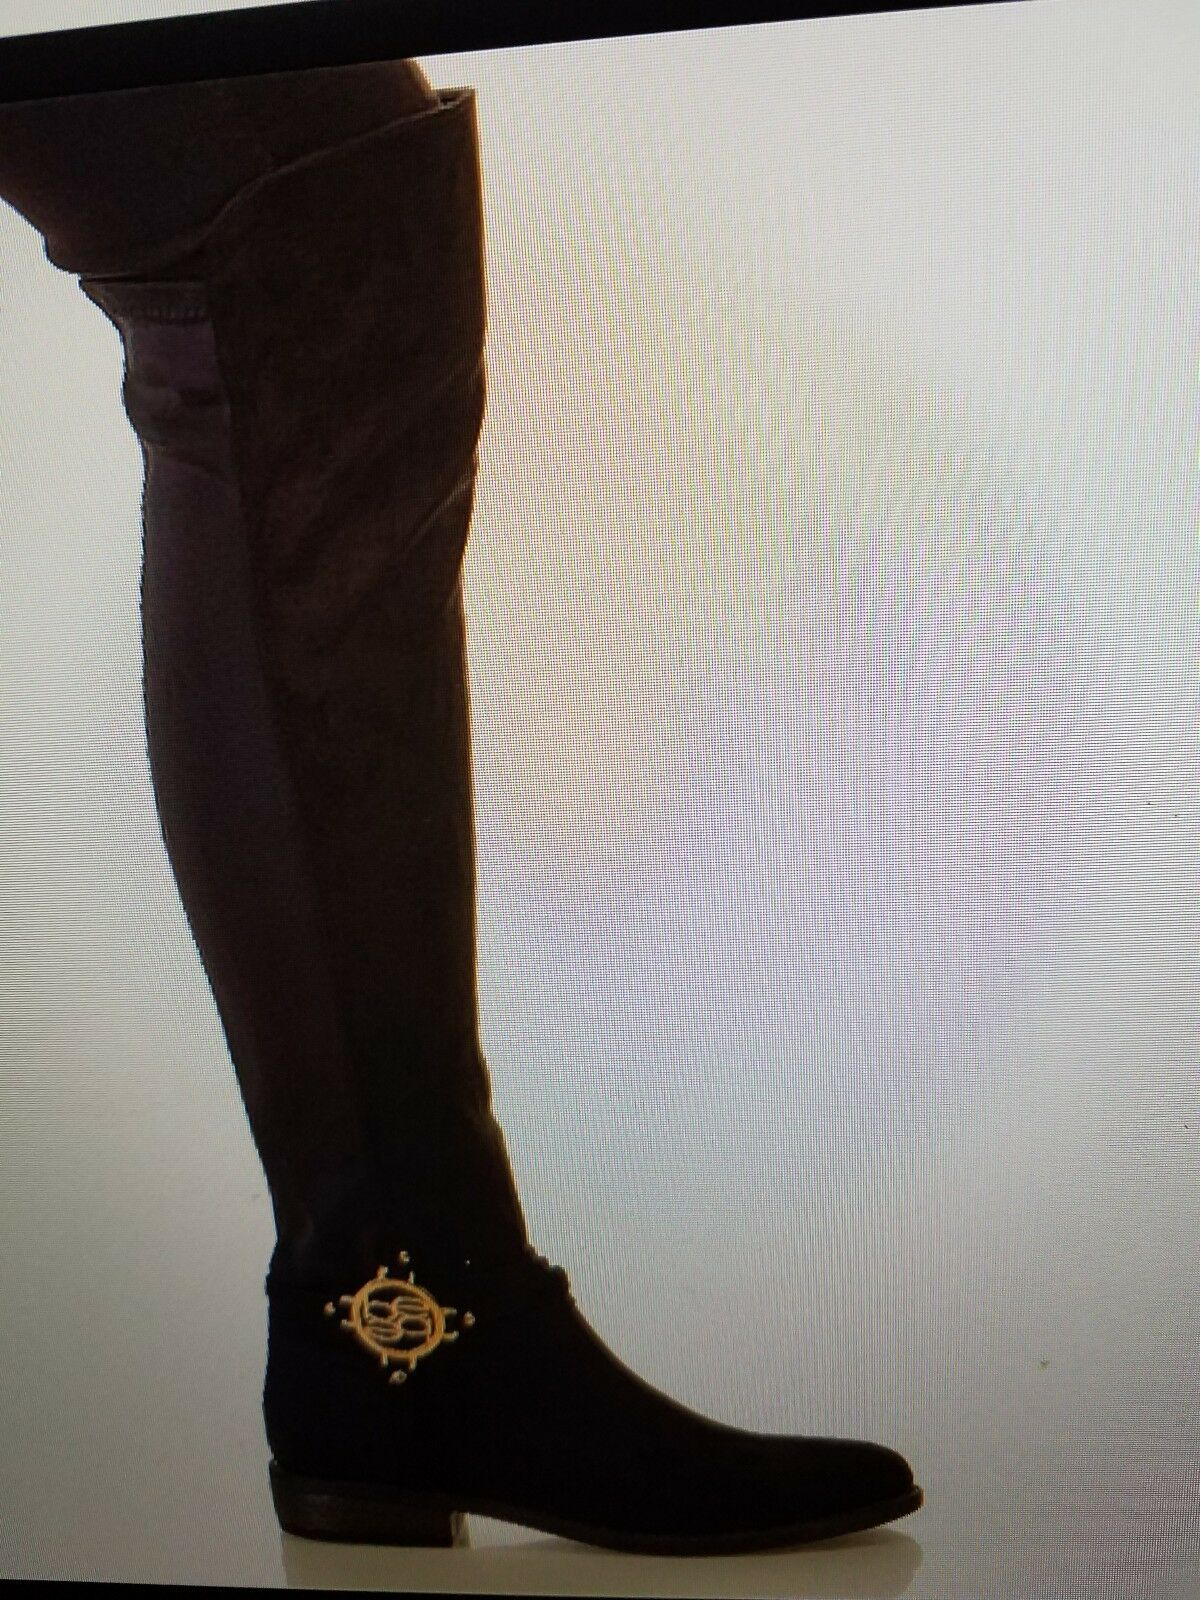 Bebe Knee High Boots 7  or 7.5